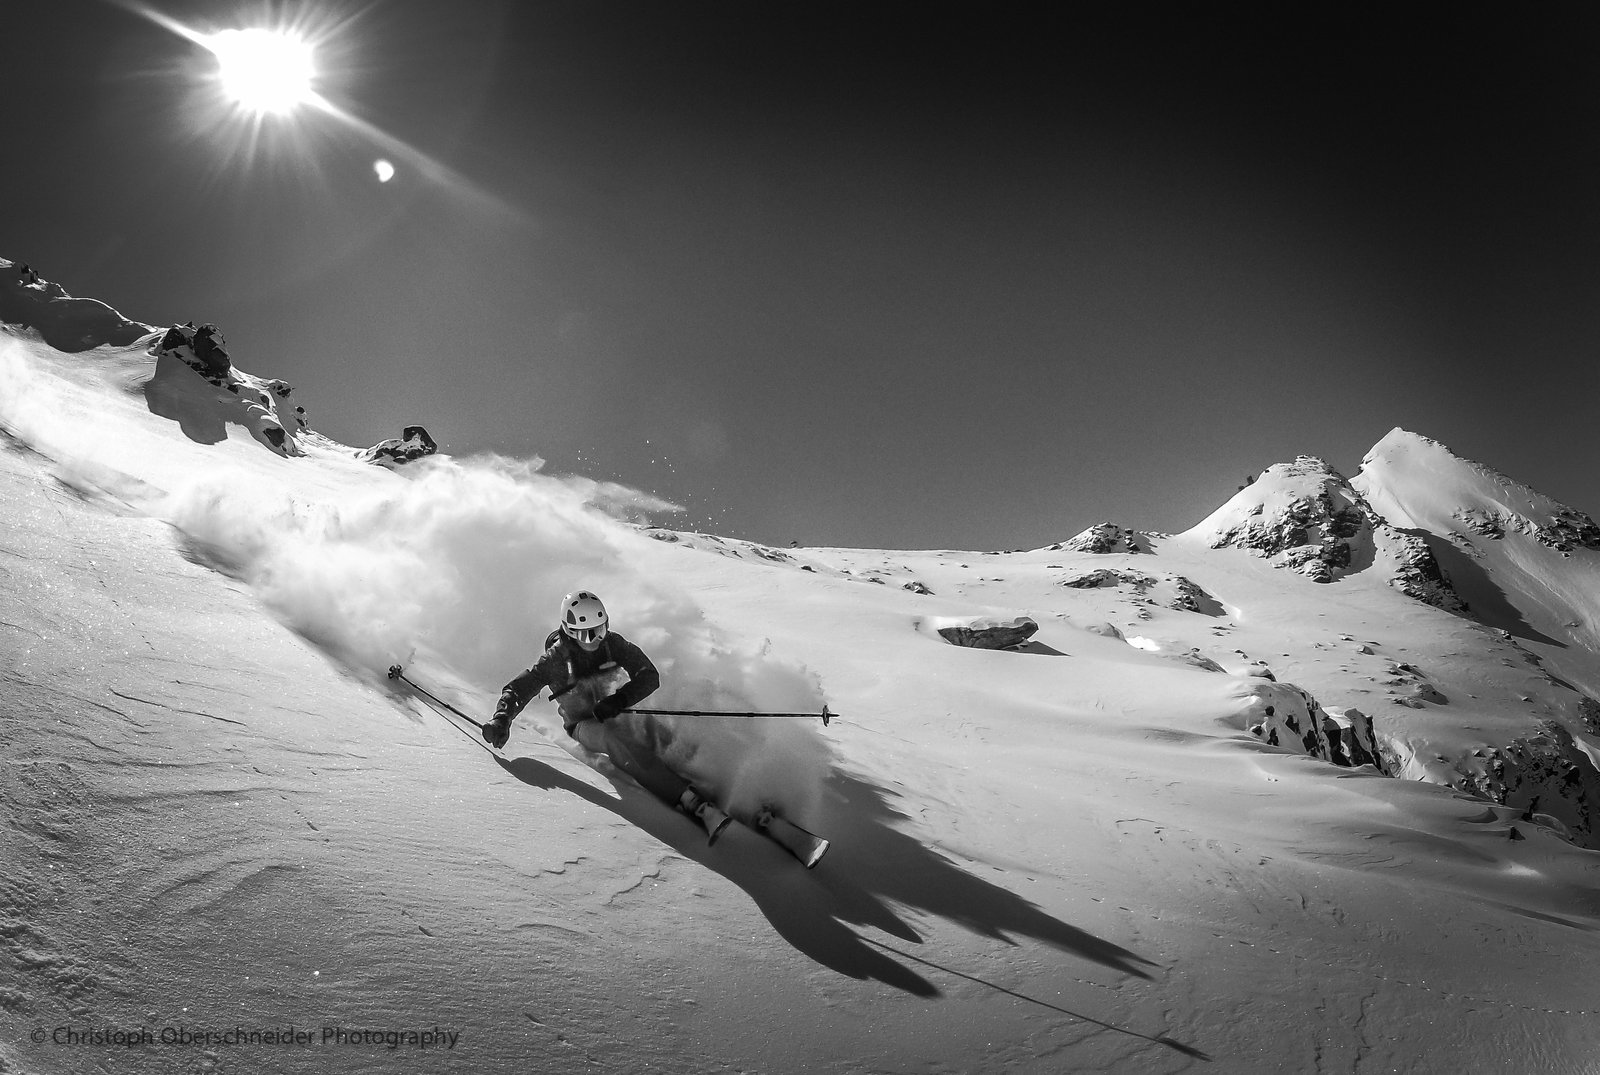 B&W Powder Skiing in April 2012